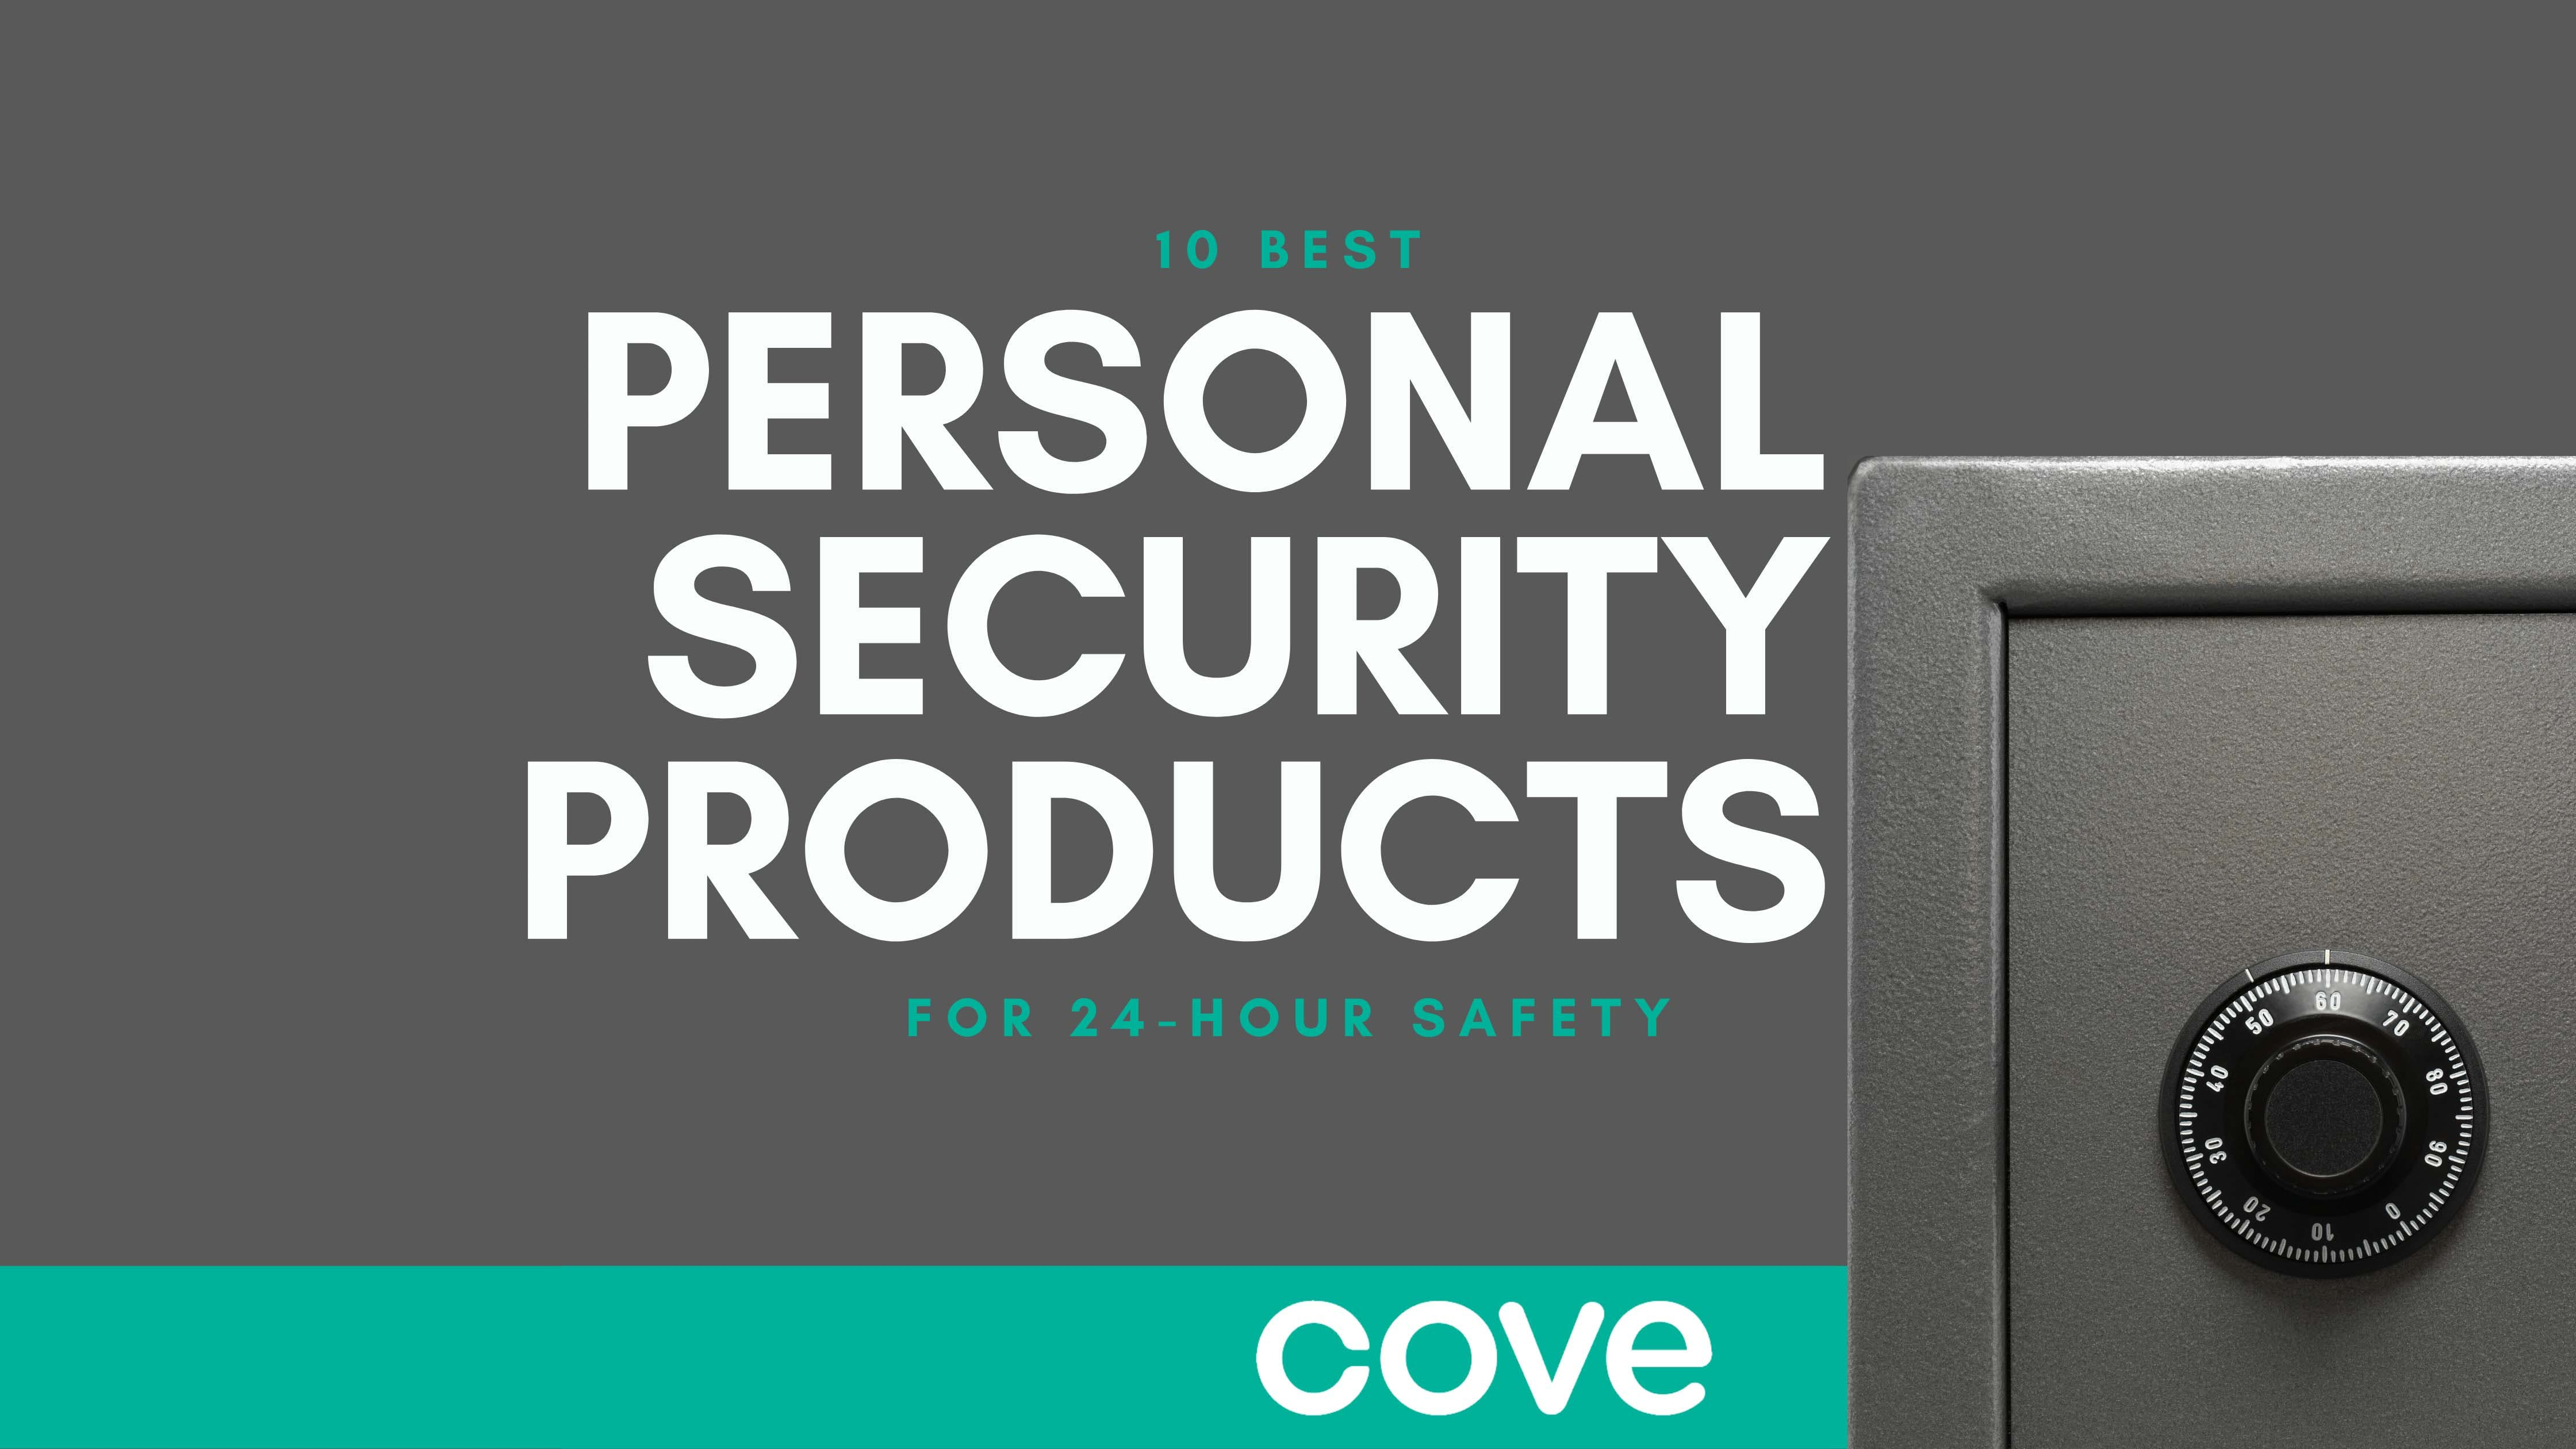 Personal Security Products for 24-Hour Safety